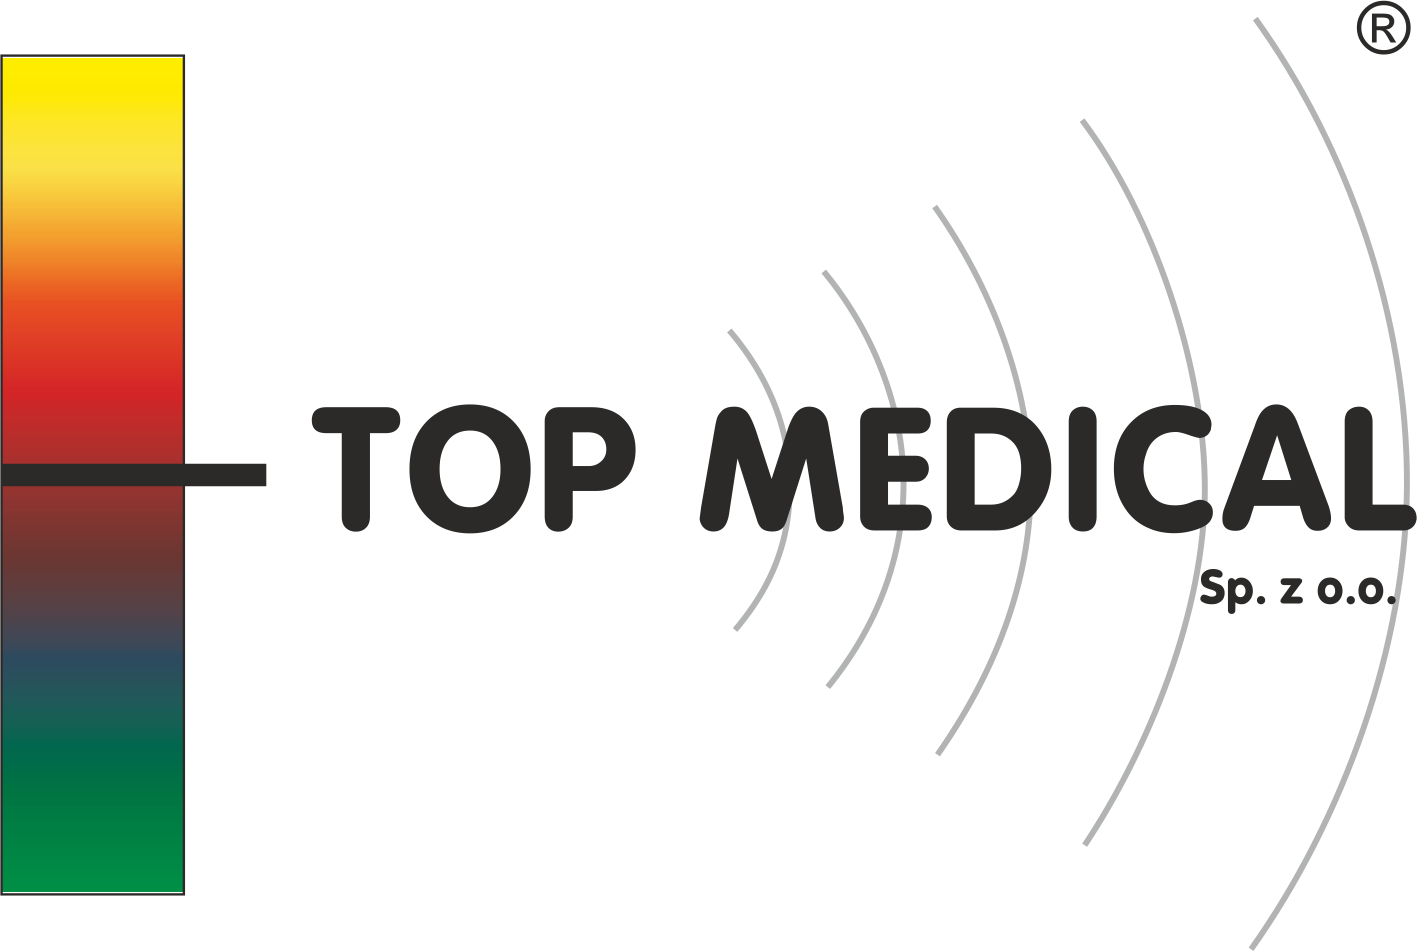 Top Medical Lublin